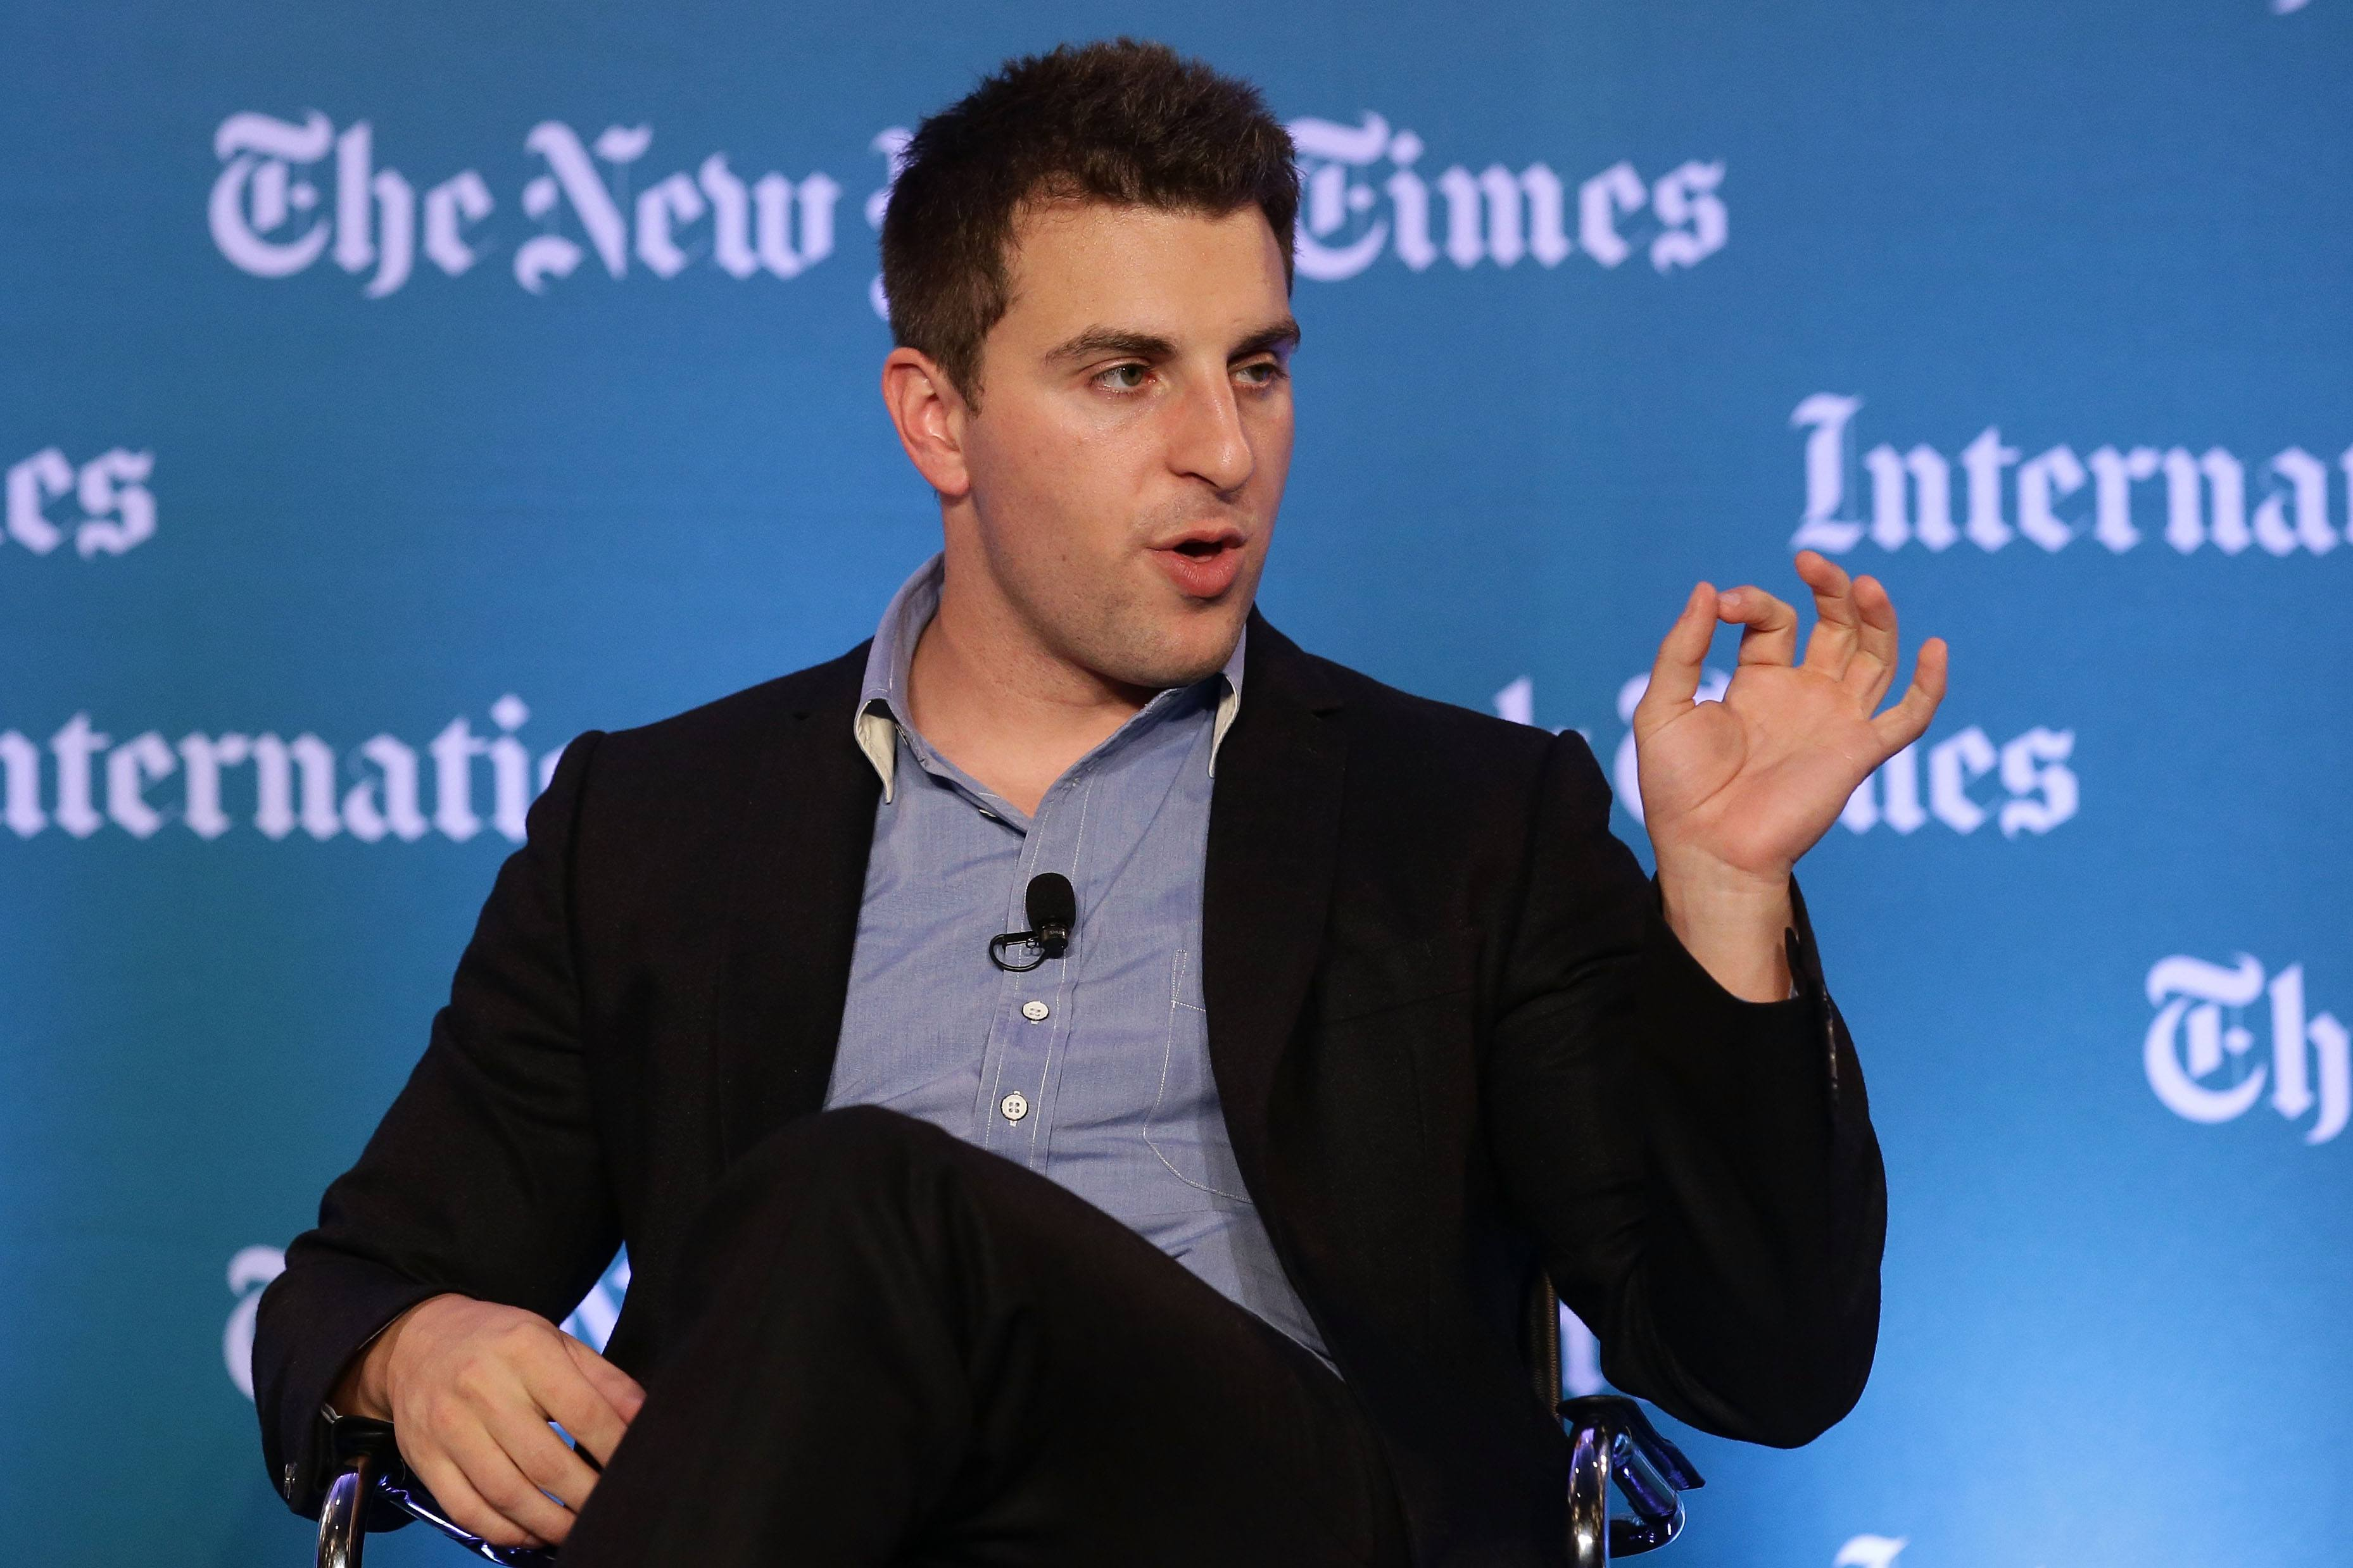 Brian Chesky, Airbnb